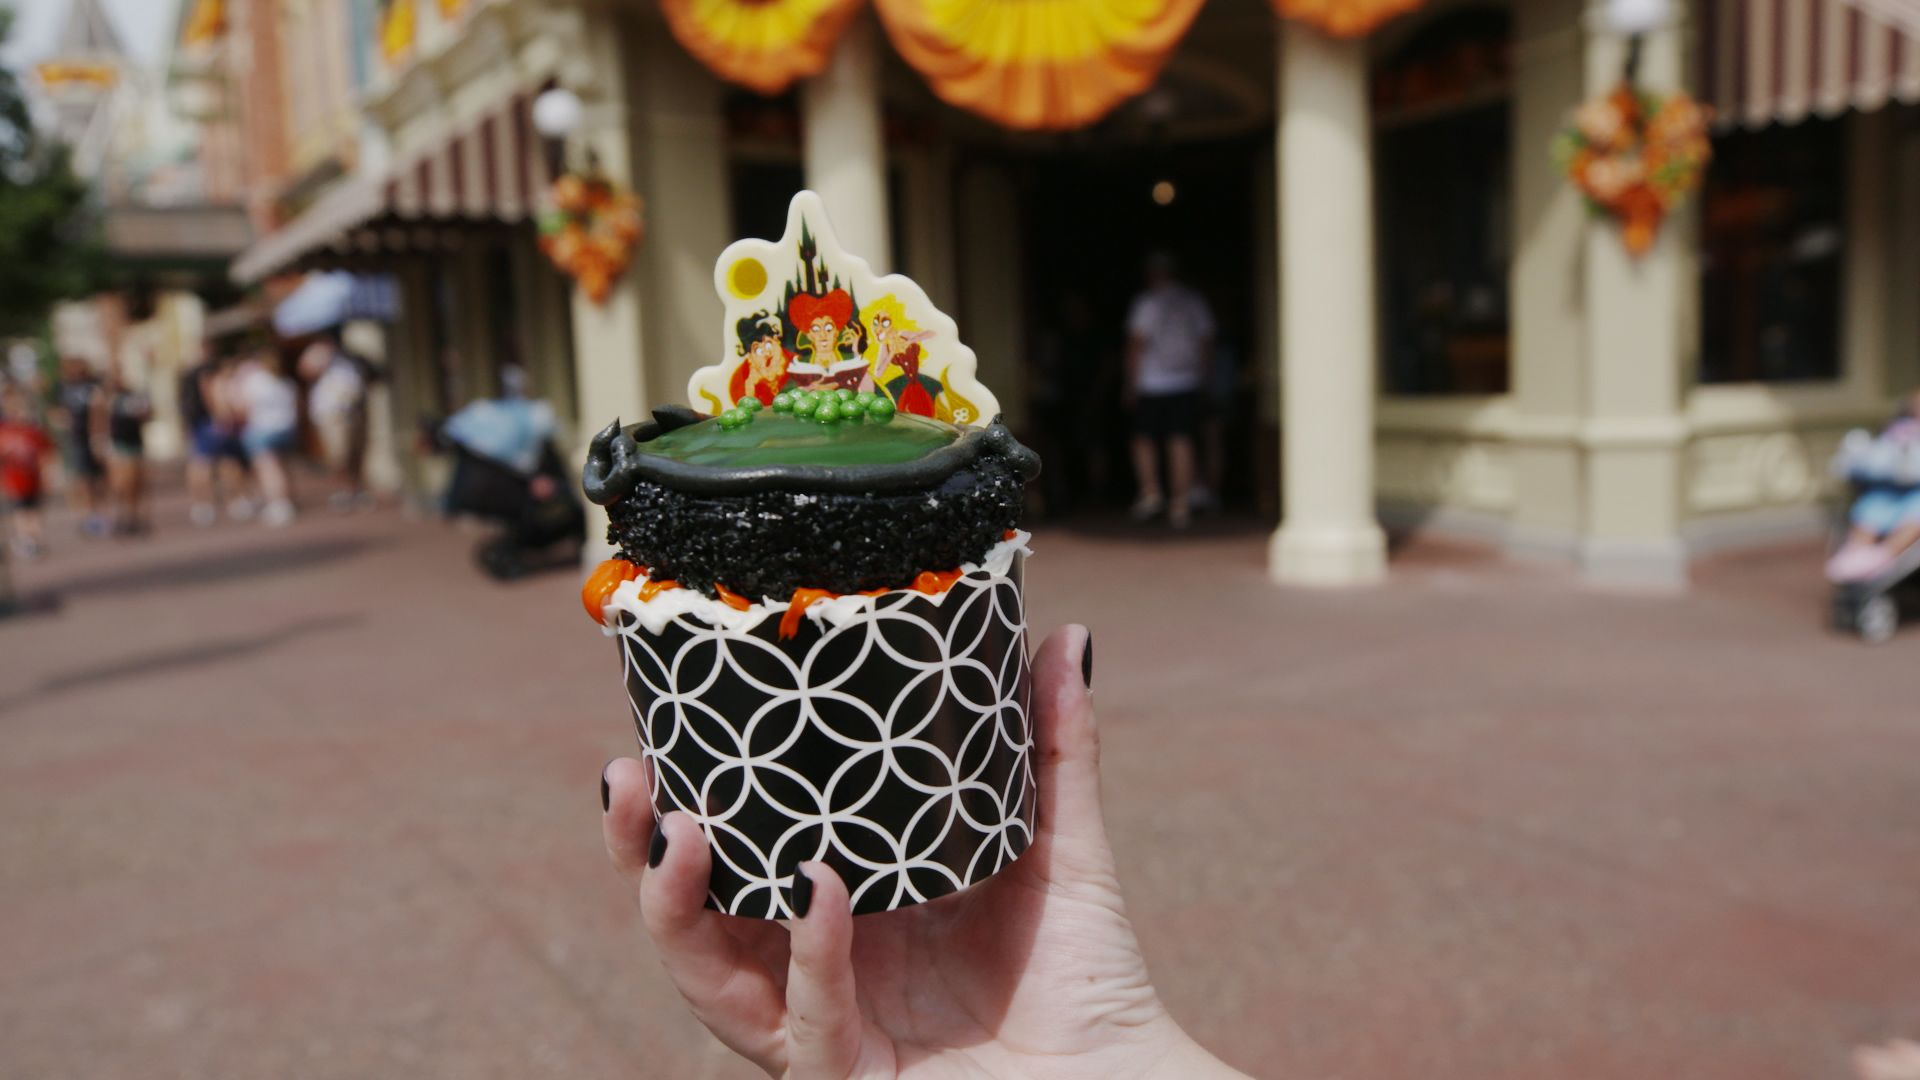 Disney World's 2019 Halloween Treat Lineup Is Here And It Is GOOD